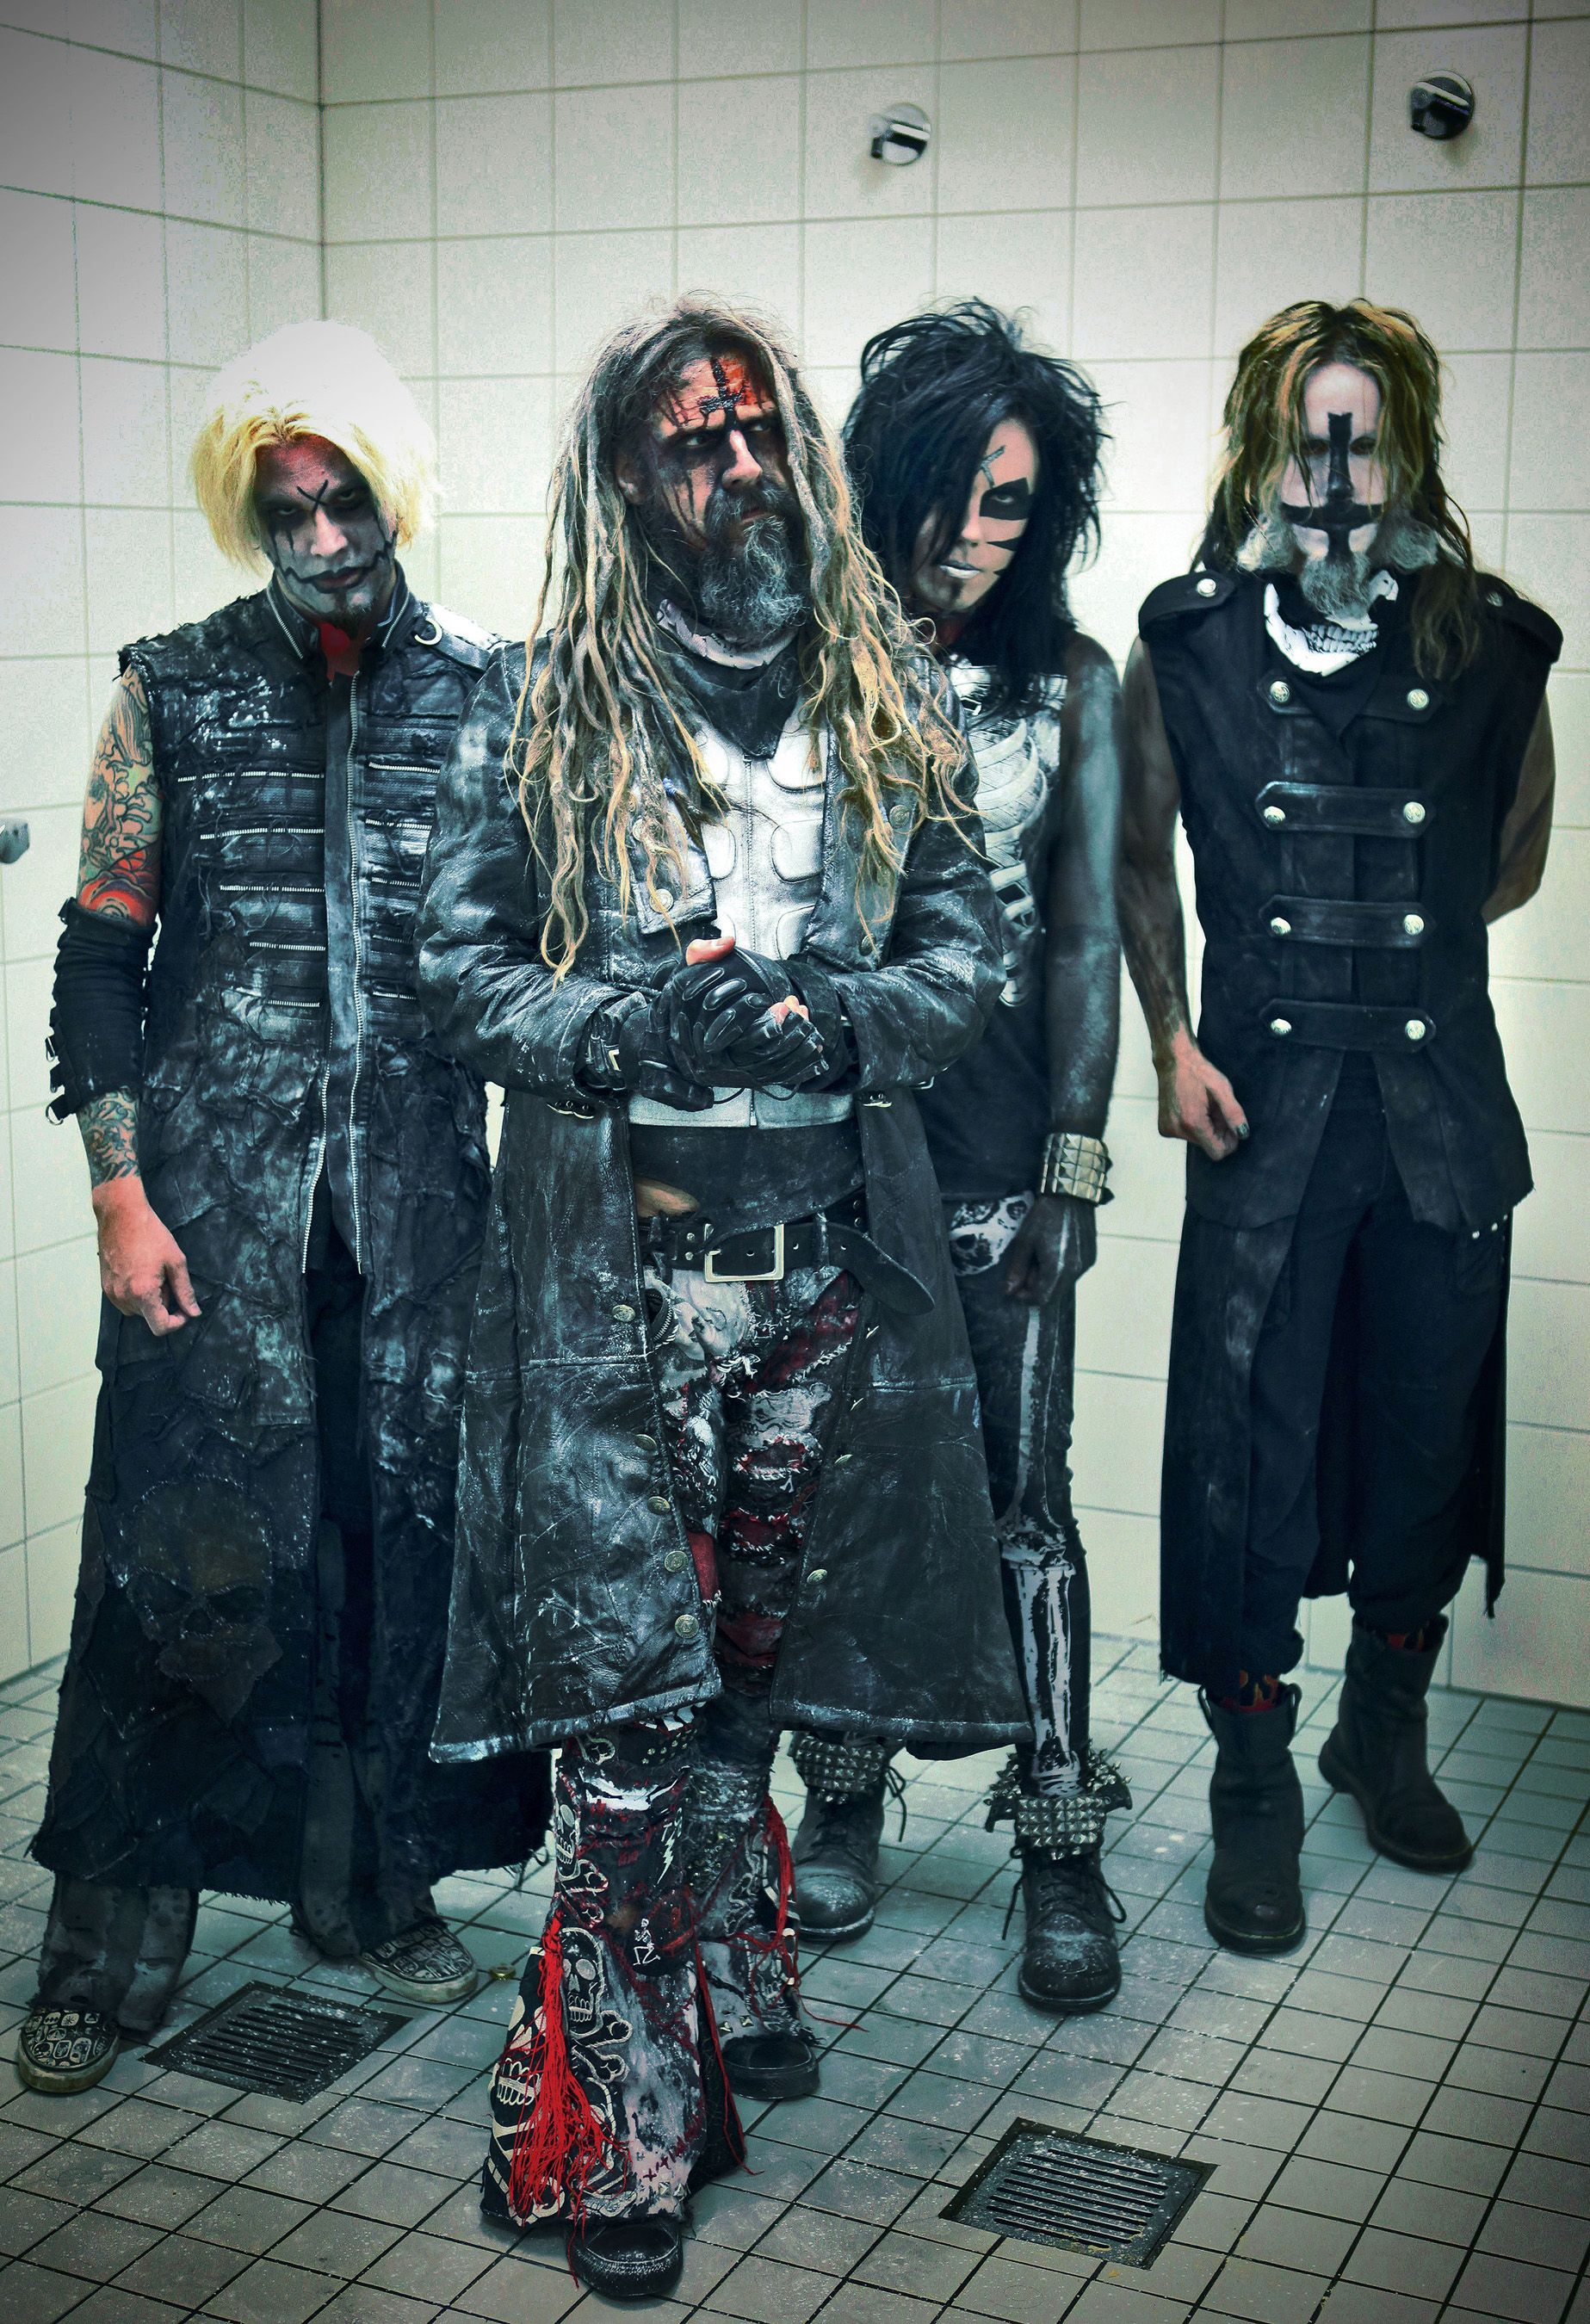 rob zombie and band including john 5 john is in the band too - Rob Zombie Halloween Music